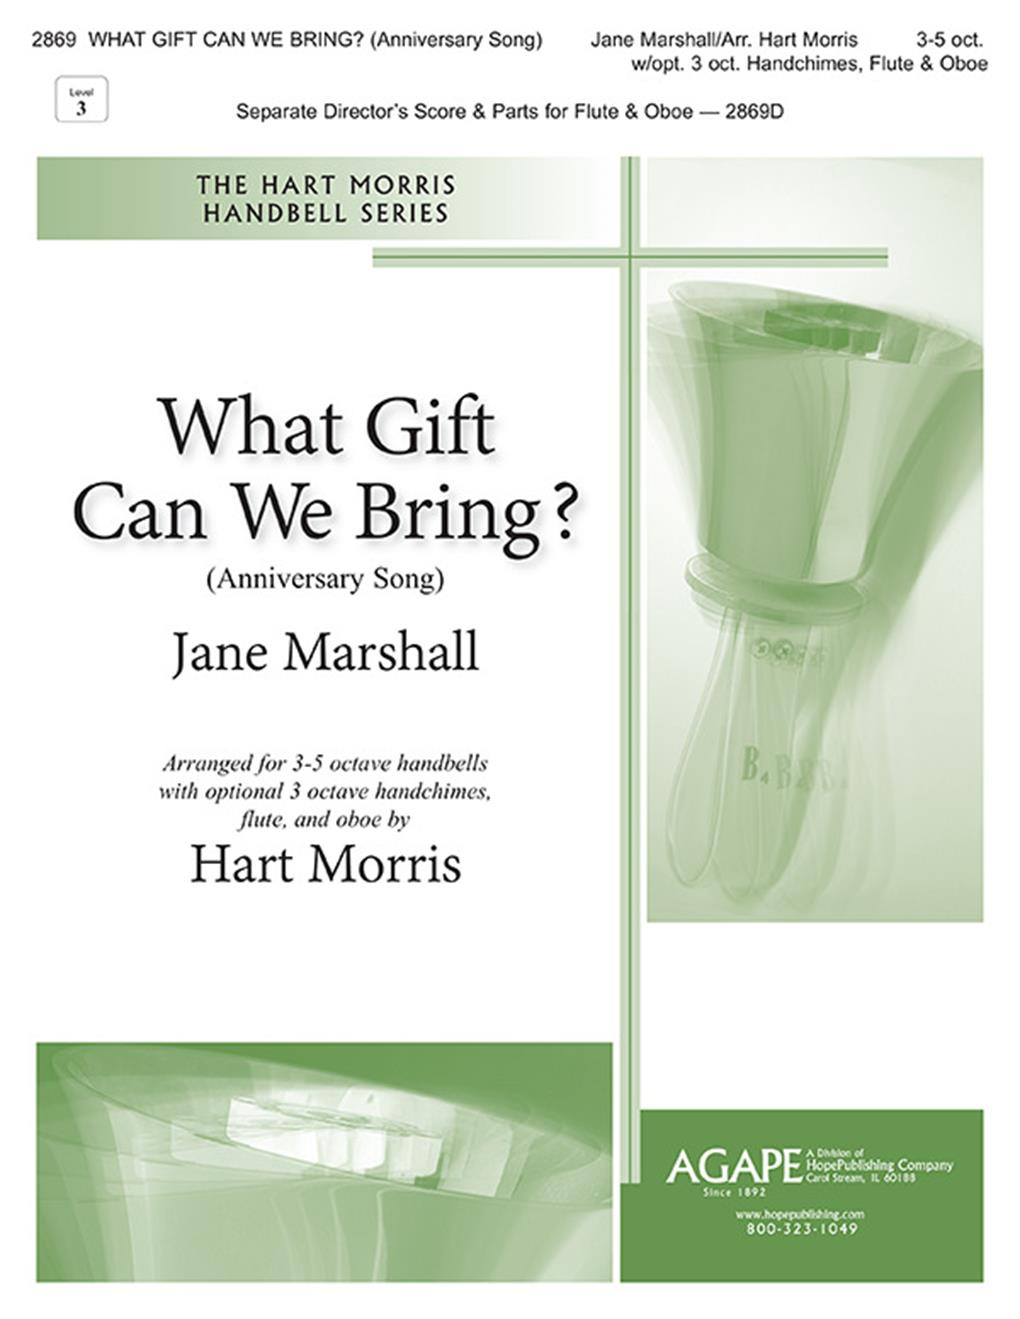 What Gift Can We Bring - 3-5 oct. Cover Image